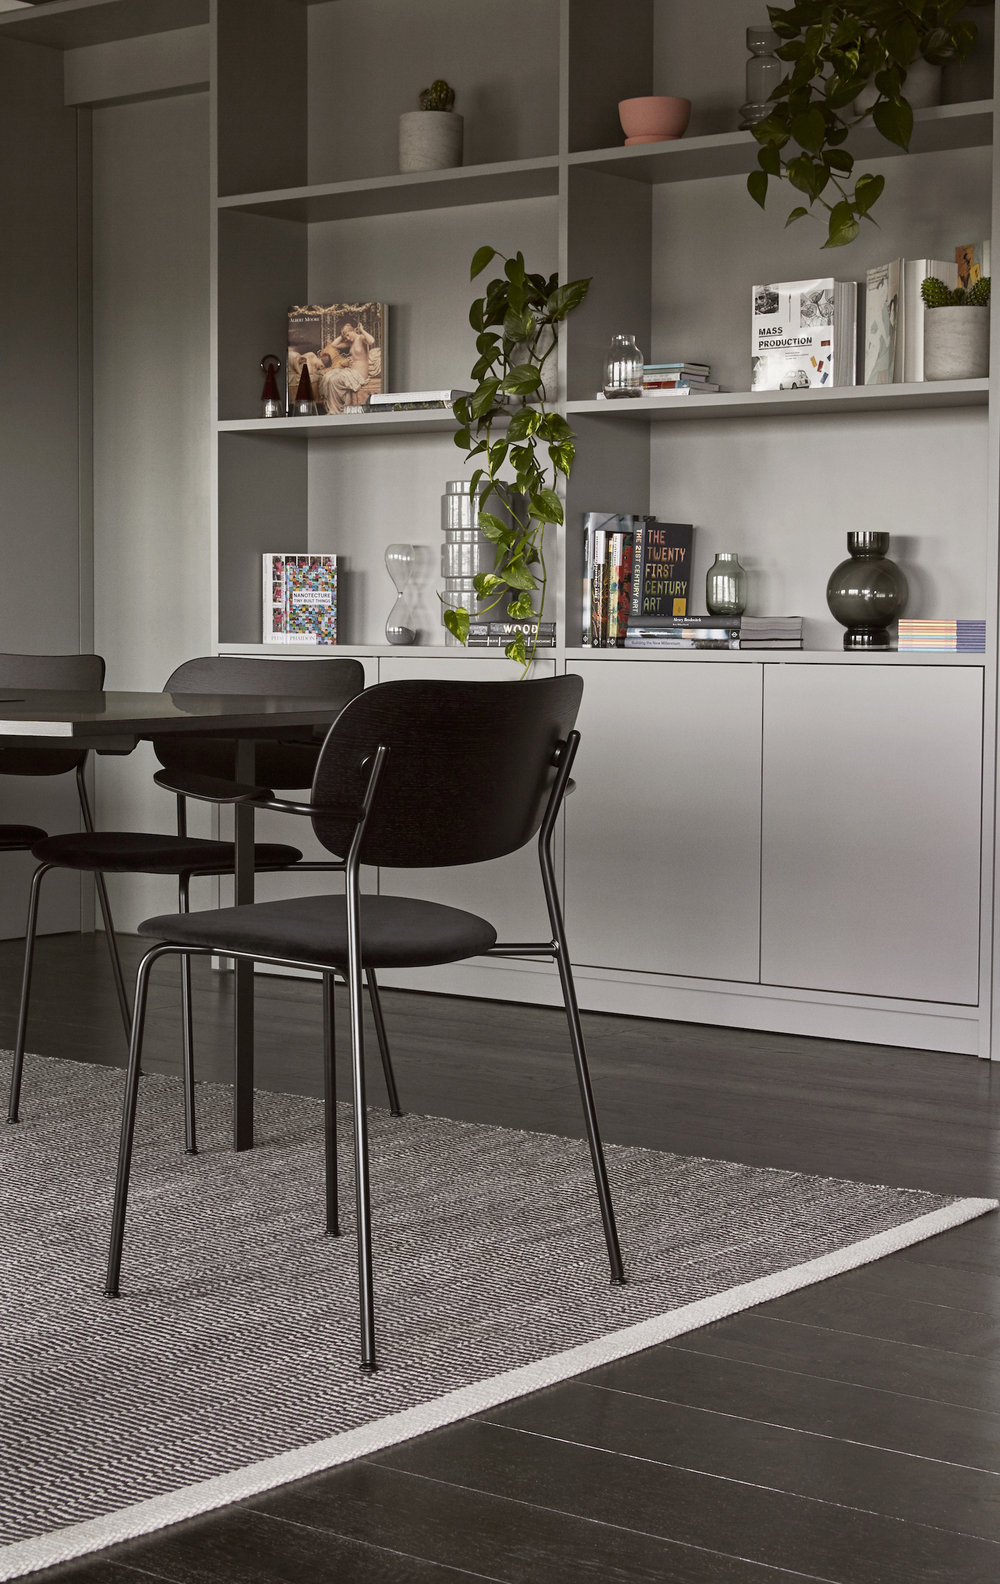 Co Chair The Lab Menu, modern furniture, chair, scandinavian design, scandinavian home Tintagel 6.jpg